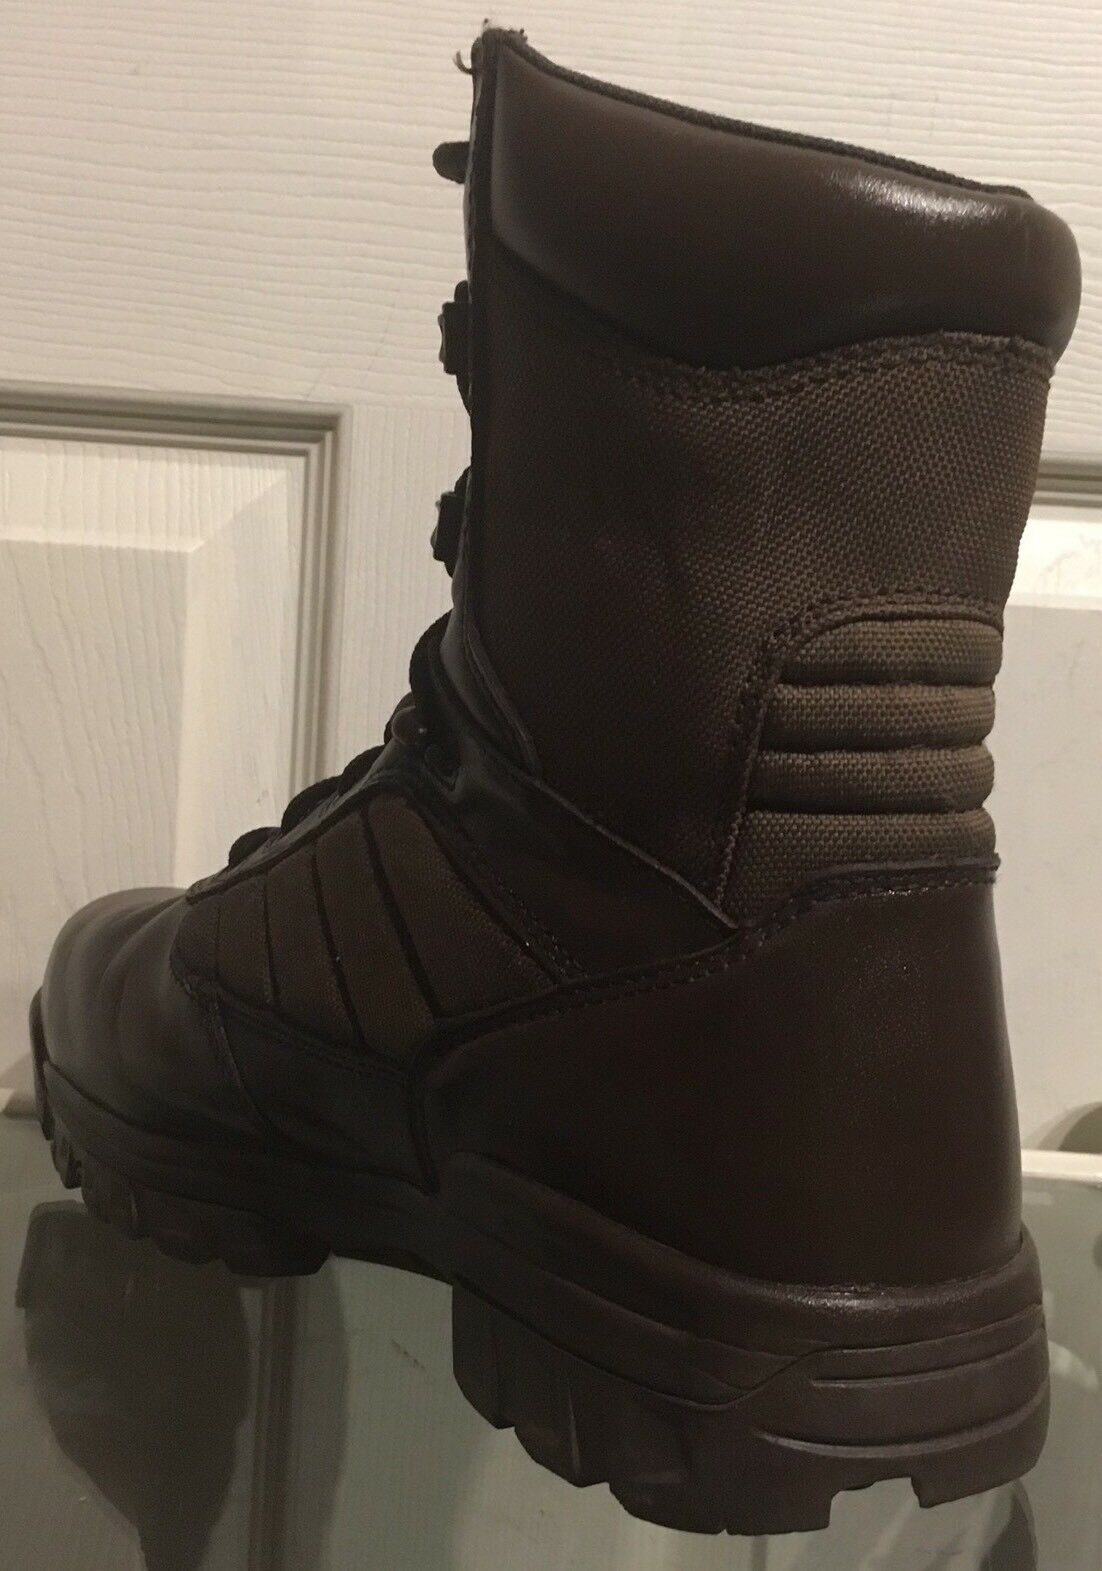 Marrón Marrón Marrón Army Issue Bates Lightweight Tactical Combat botas Male 8M BT18M beec34